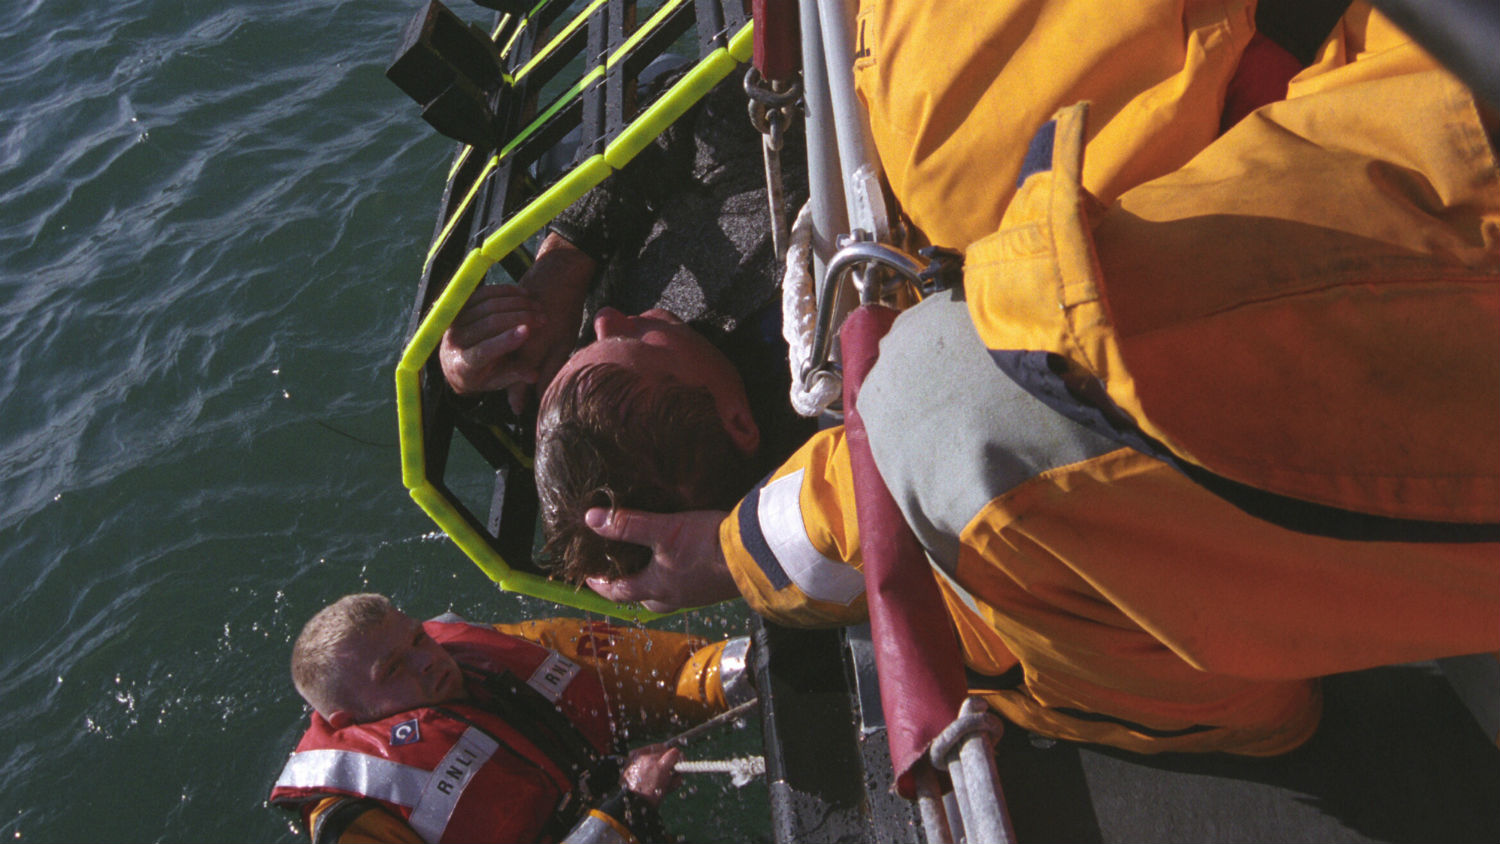 Volunteer lifeboat crew have saved lives at sea on Tyne class lifeboats for more than 30 years